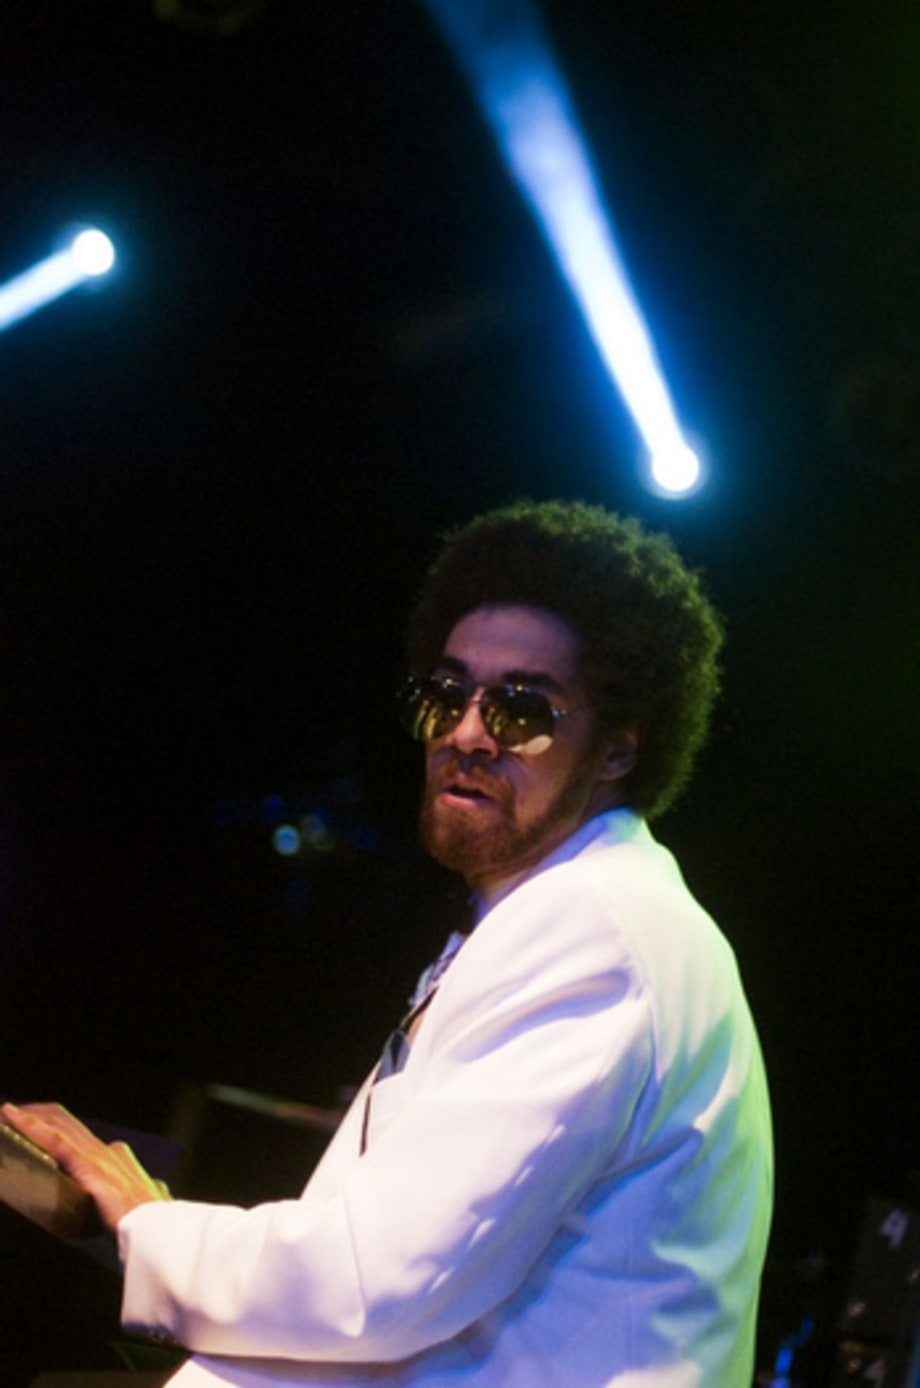 Gnarls Barkley Gallery: Gnarls Barkley at Highline Ballroom - 10